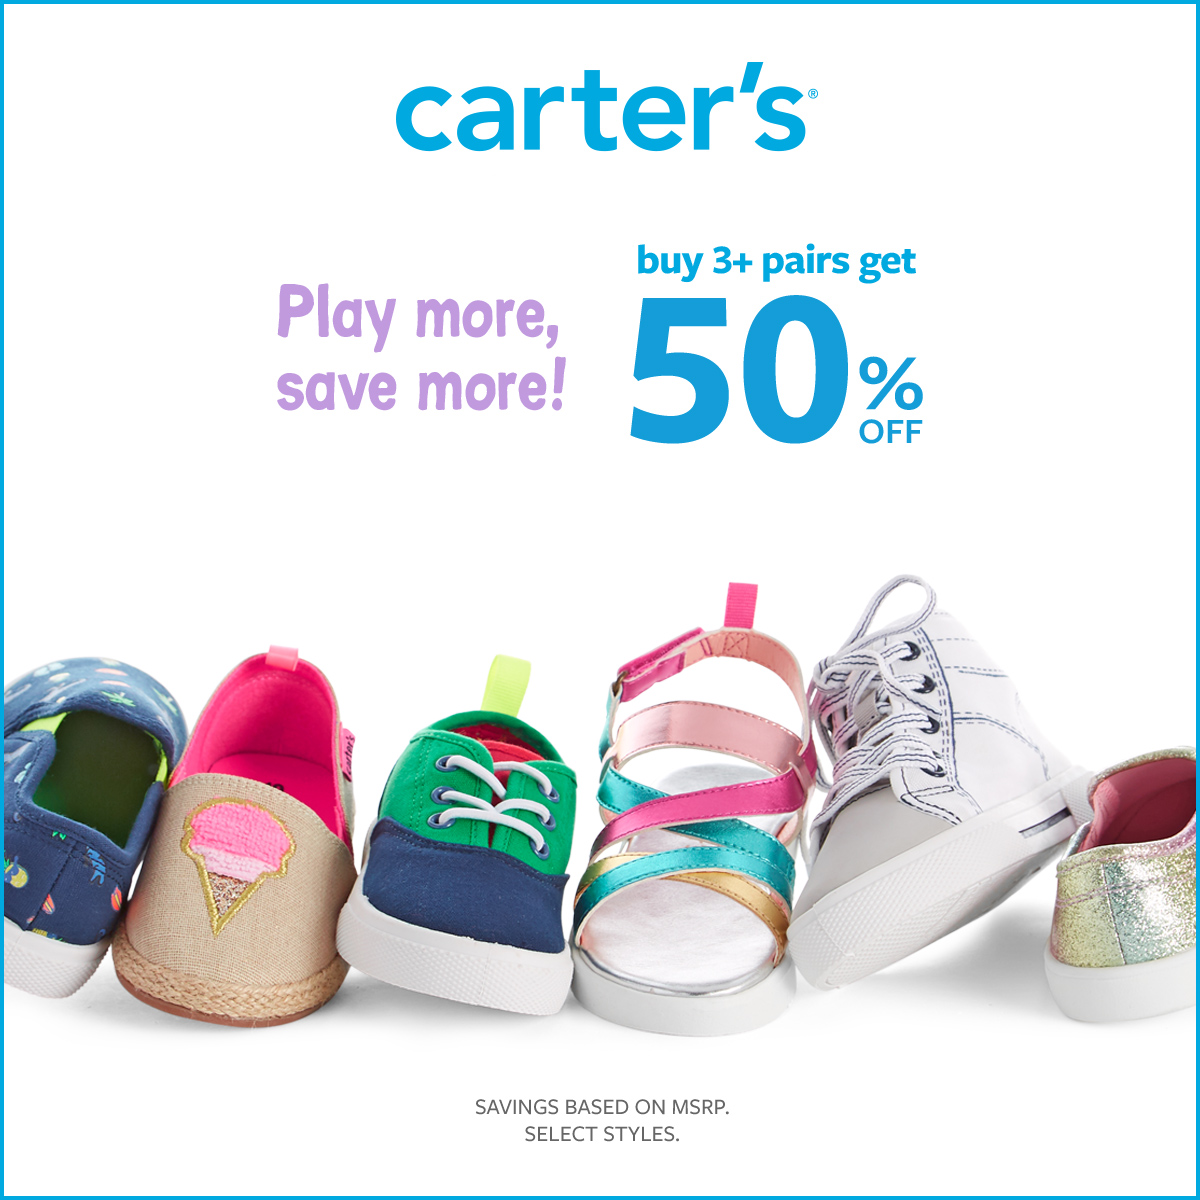 Carter's Play More, Save More from Carter's